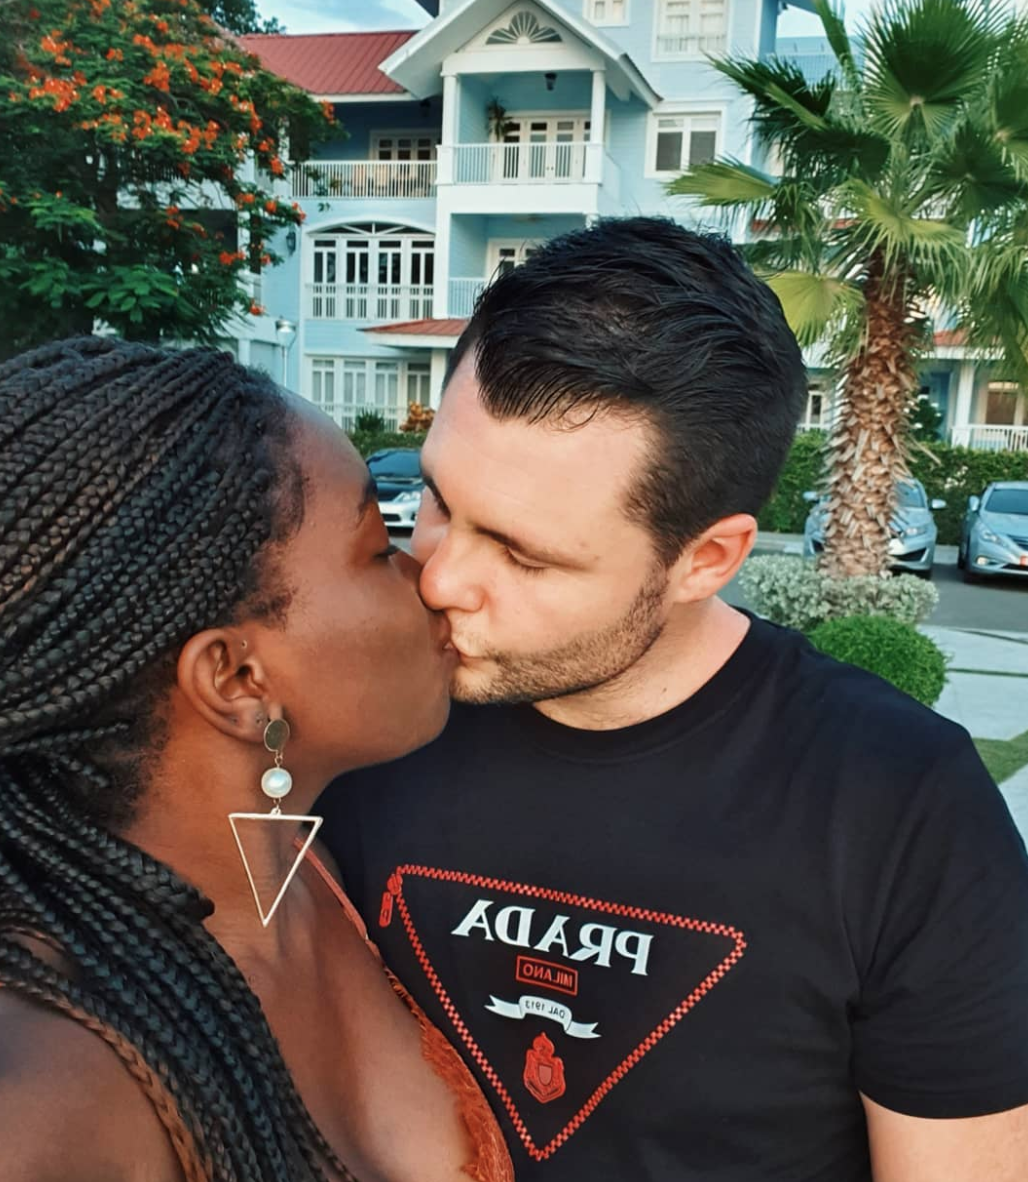 90 Day Fiance Star Abby and Husband